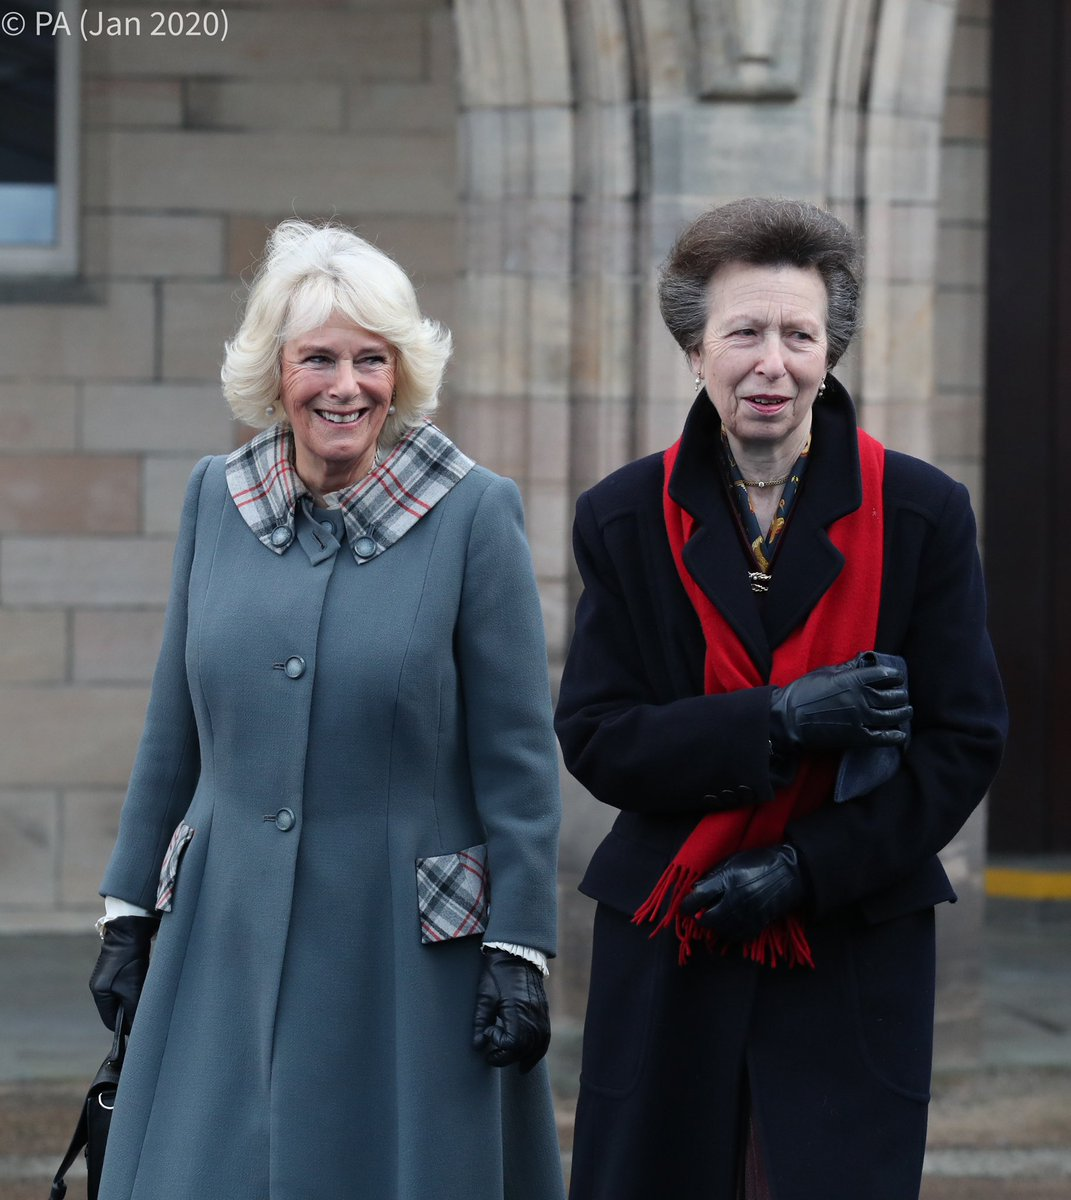 🎓 A year ago today, in her role as Chancellor of the University of Aberdeen, The Duchess of Rothesay presented her sister-in-law, The Princess Royal, with an Honorary Degree in recognition of her service to public life. https://t.co/xLJAlaXfOF